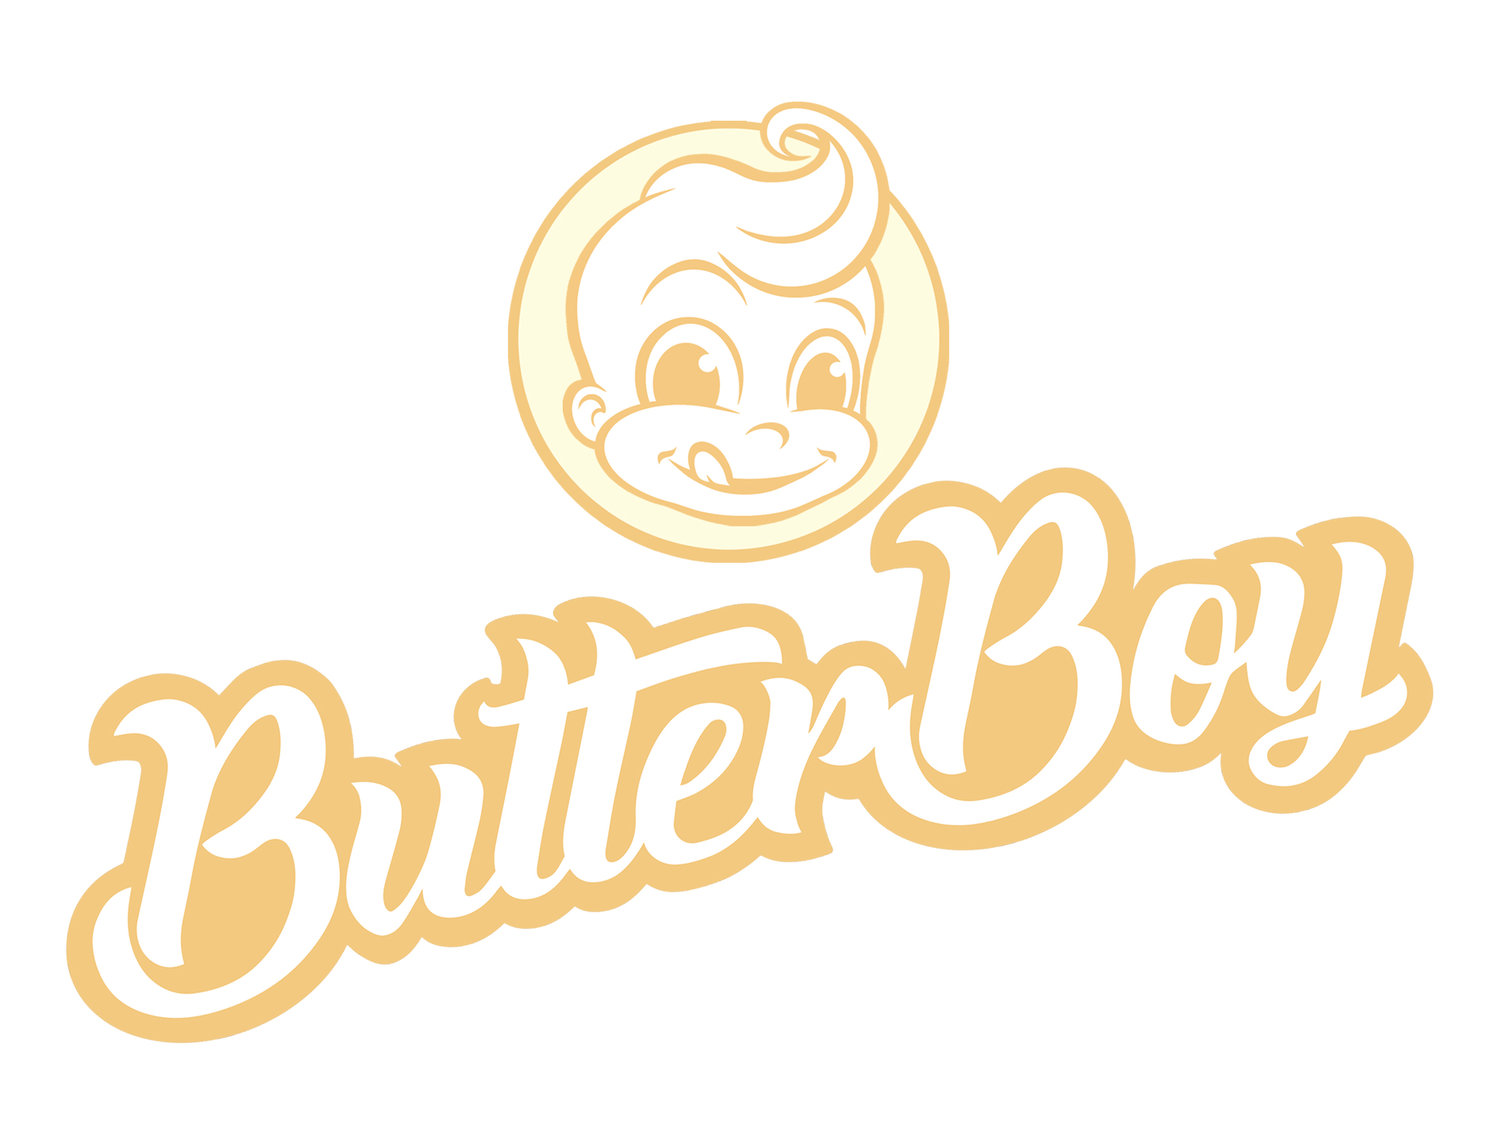 Butter Boy Bake